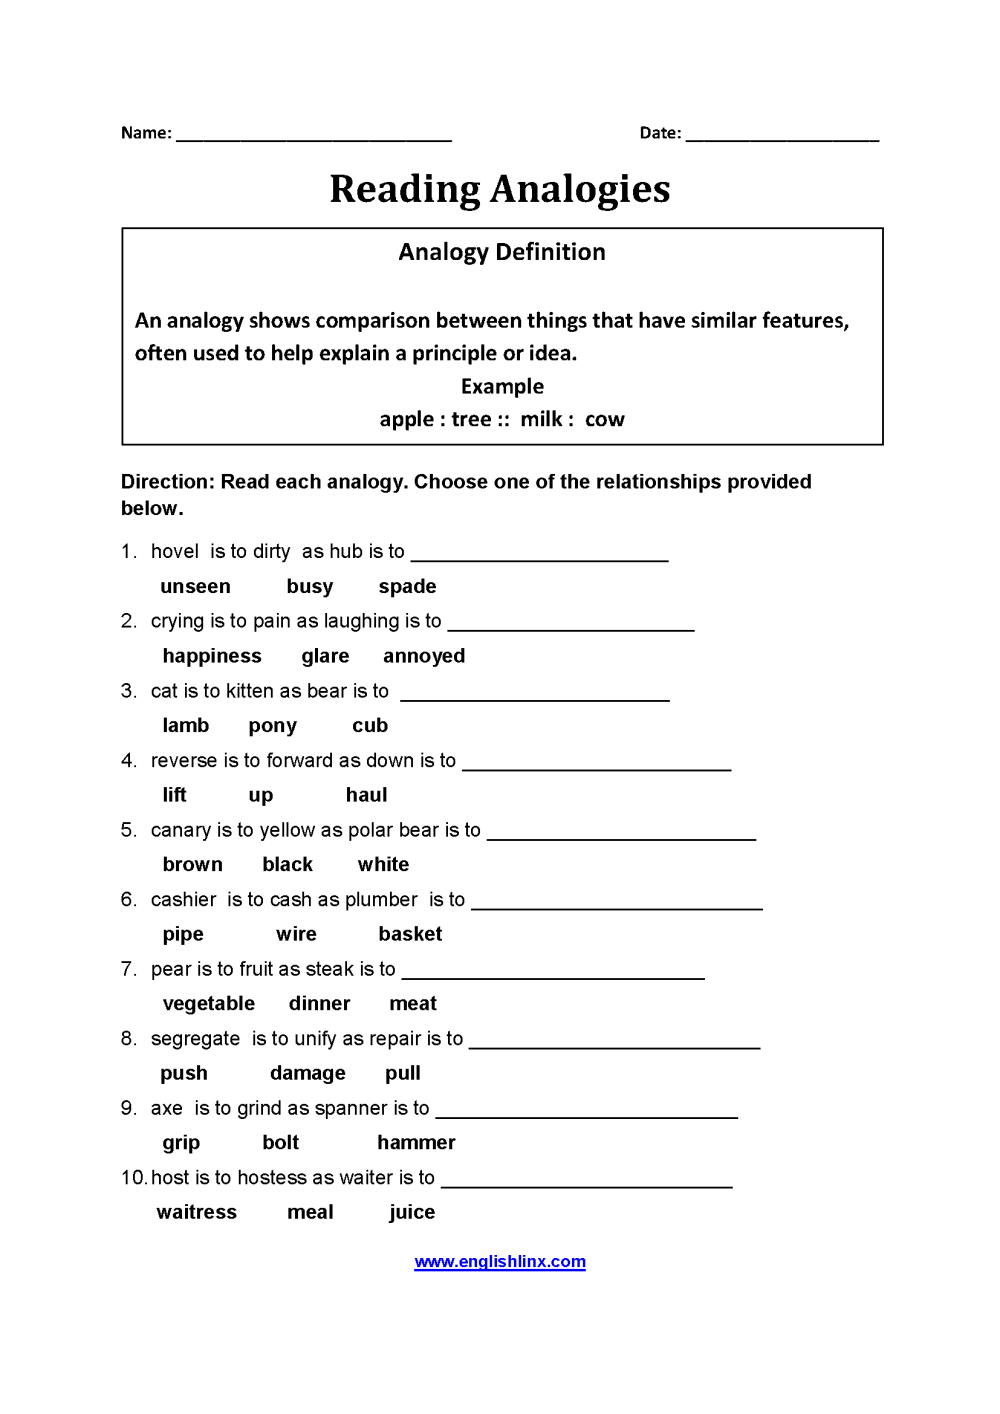 medium resolution of Englishlinx.com   Analogy Worksheets